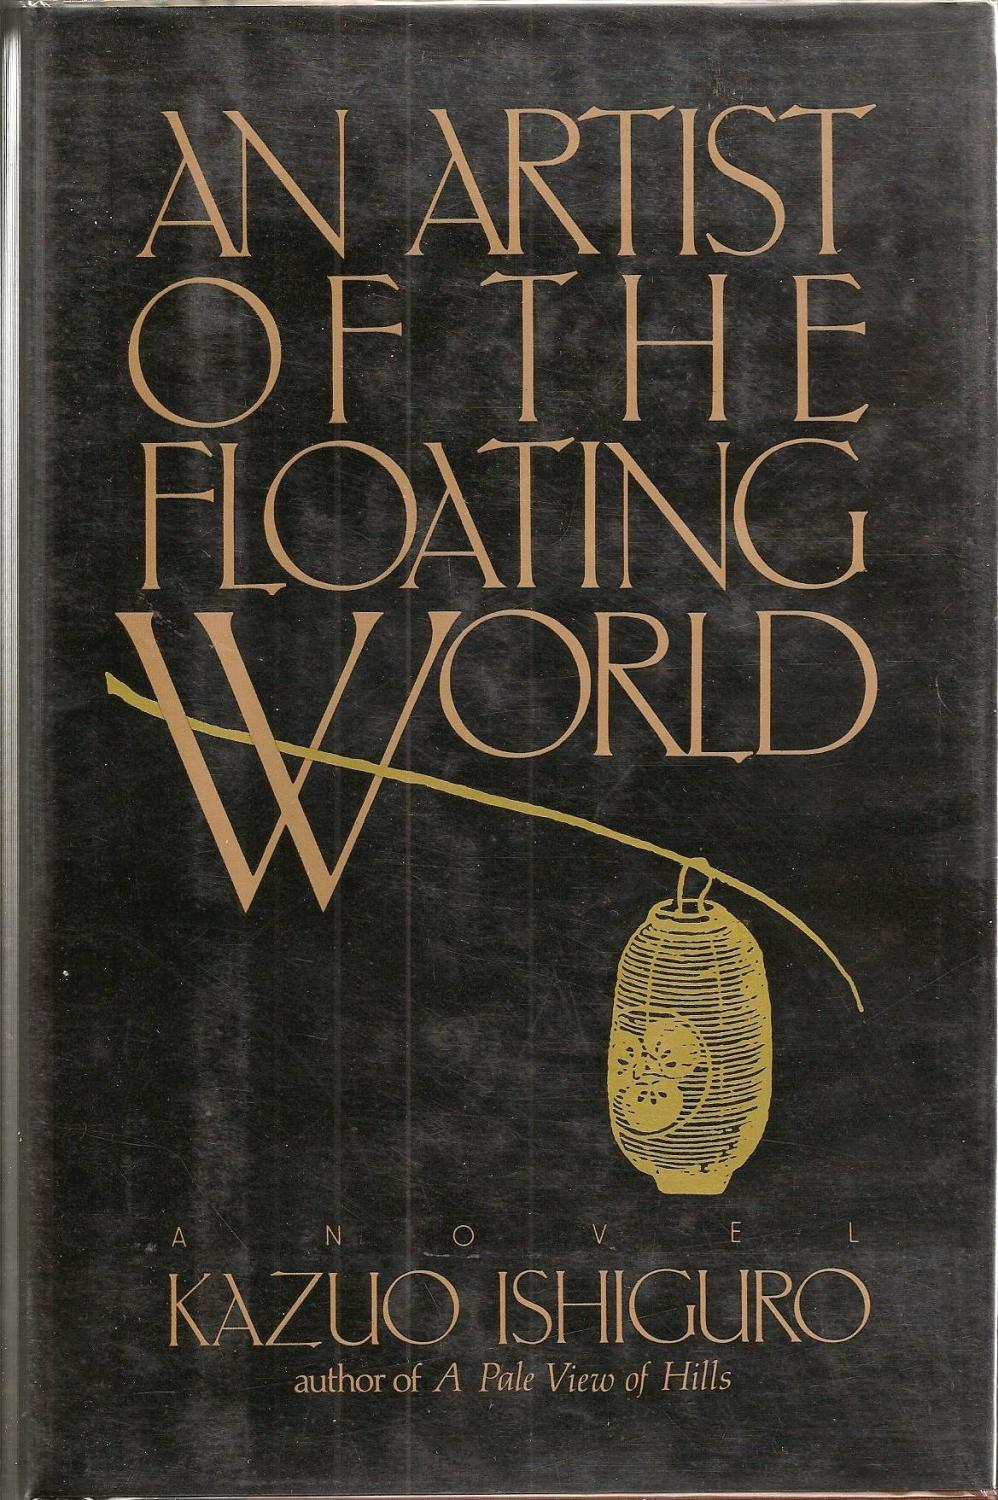 img - An Artist of the Floating World by Kazuo Ishiguro (1986)